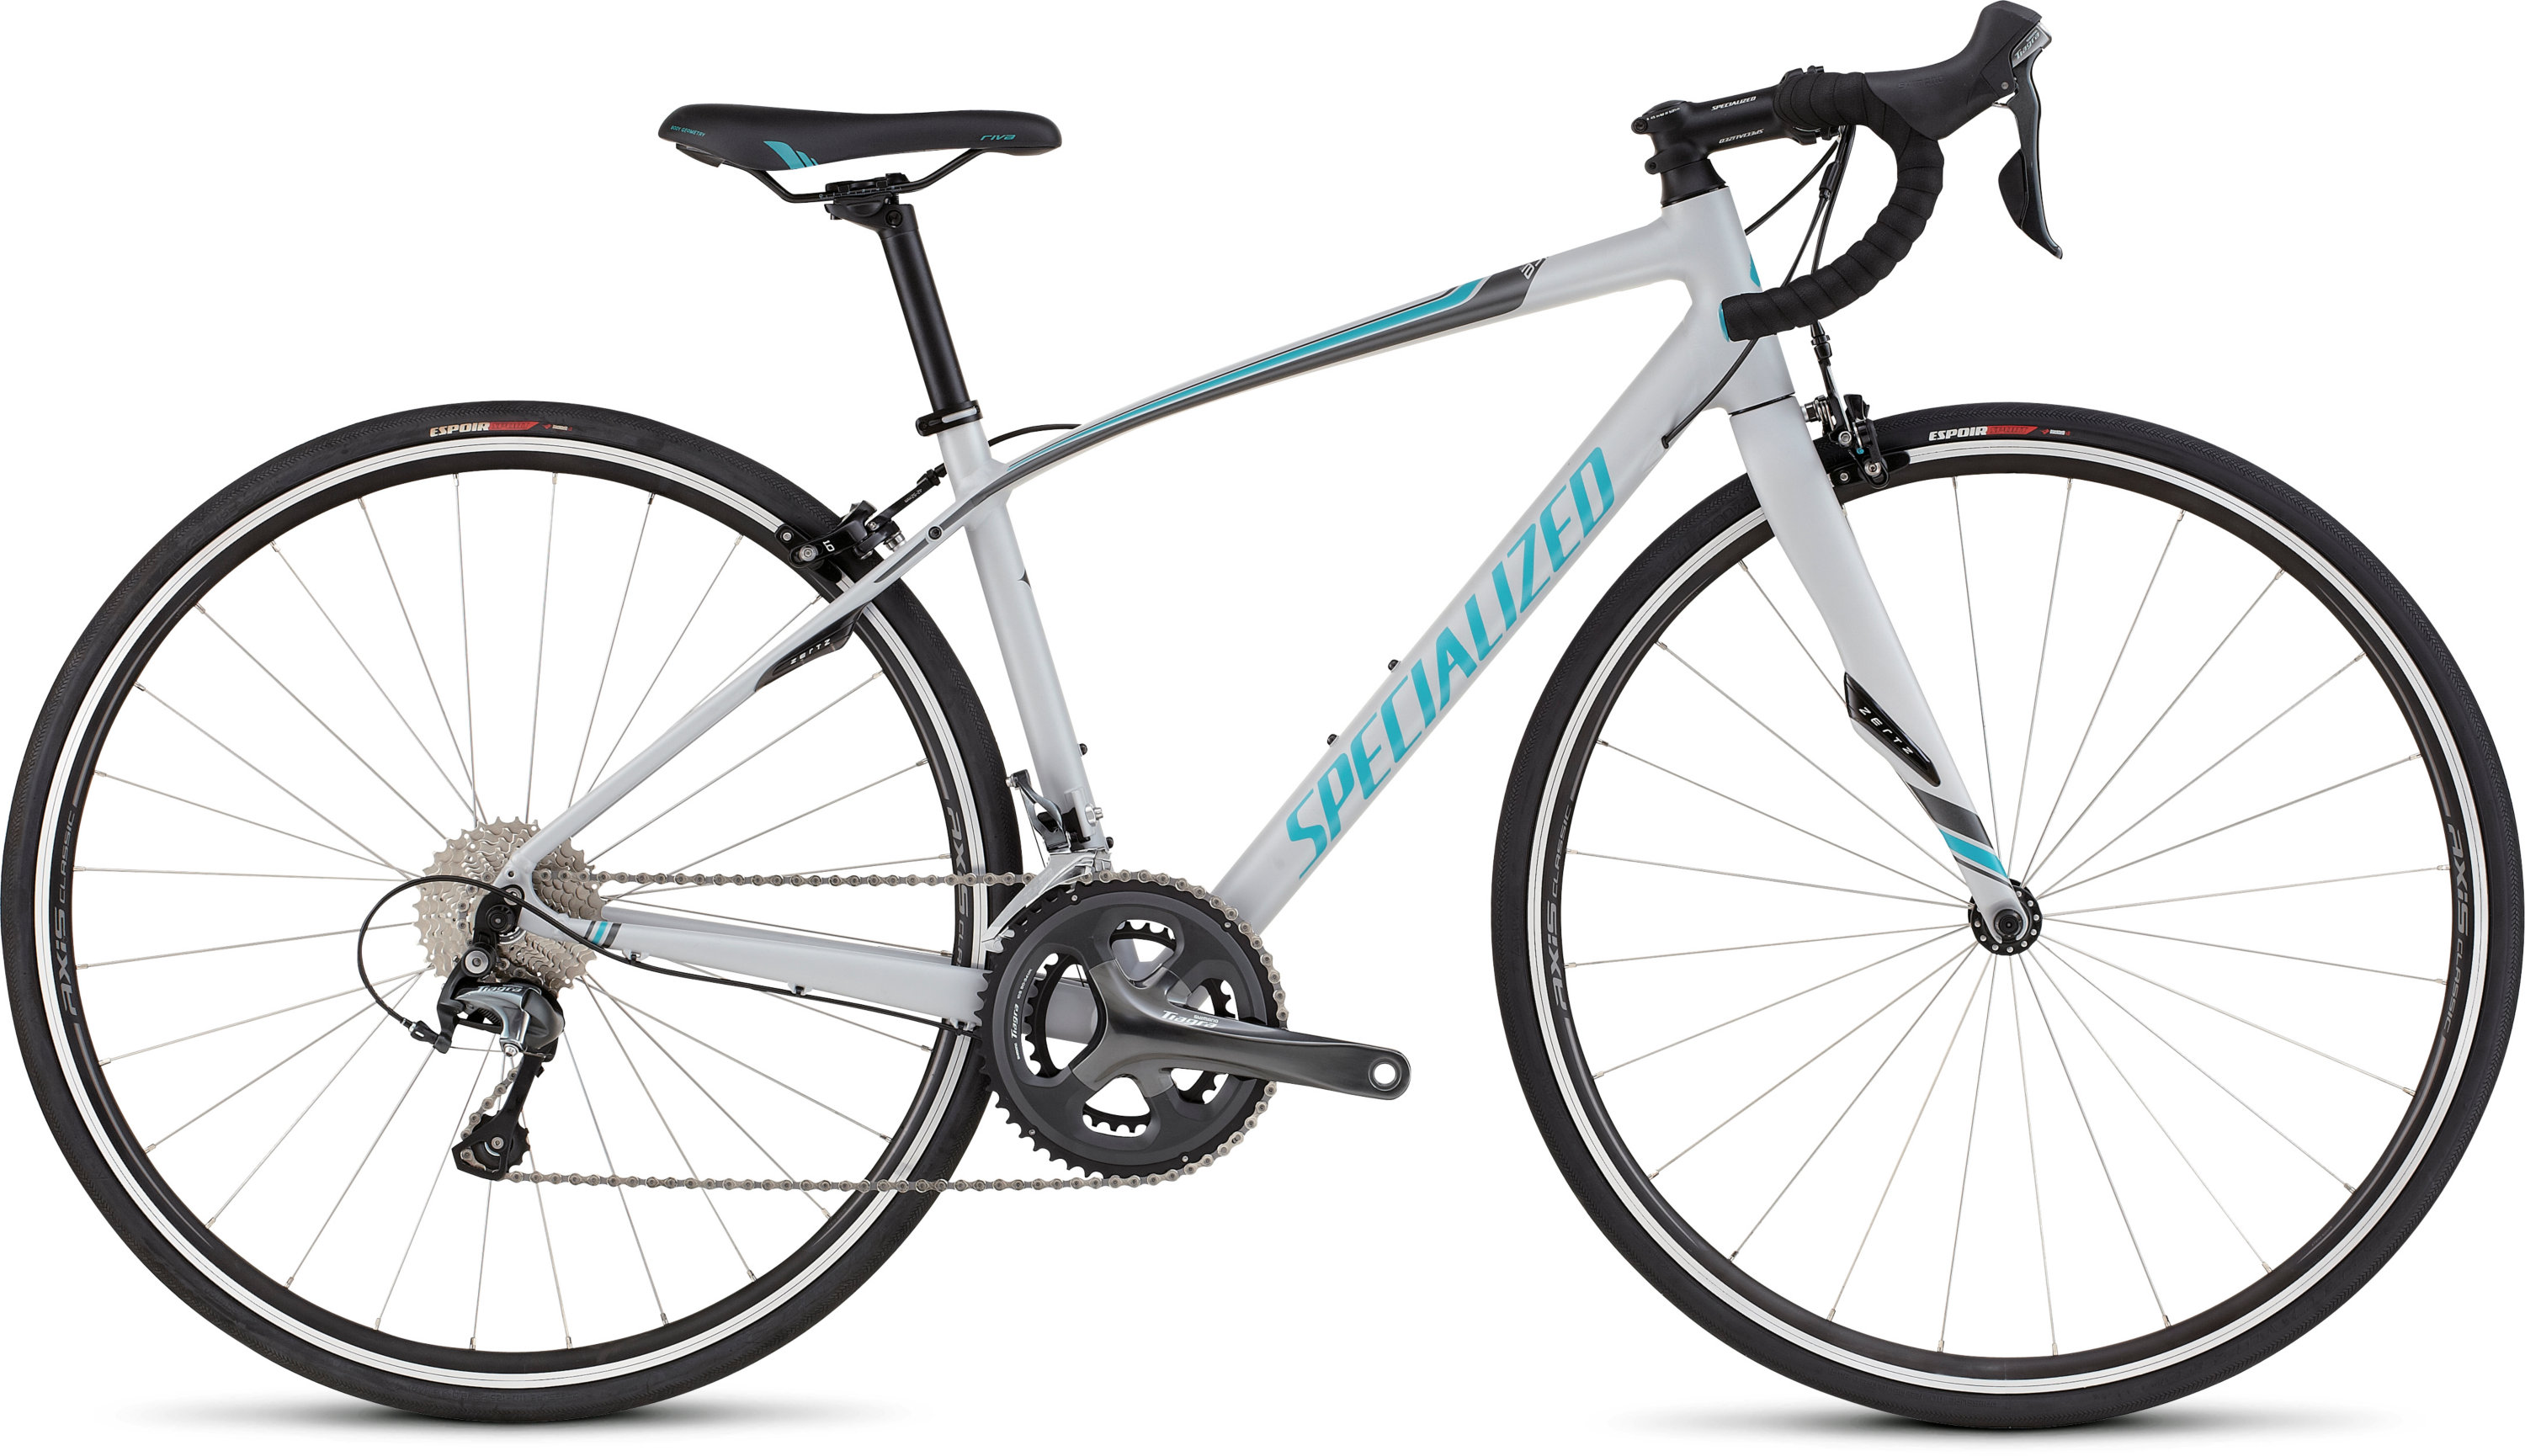 SPECIALIZED DOLCE ELITE FTHYWHT/SIL/PRLTUR 44 - schneider-sports